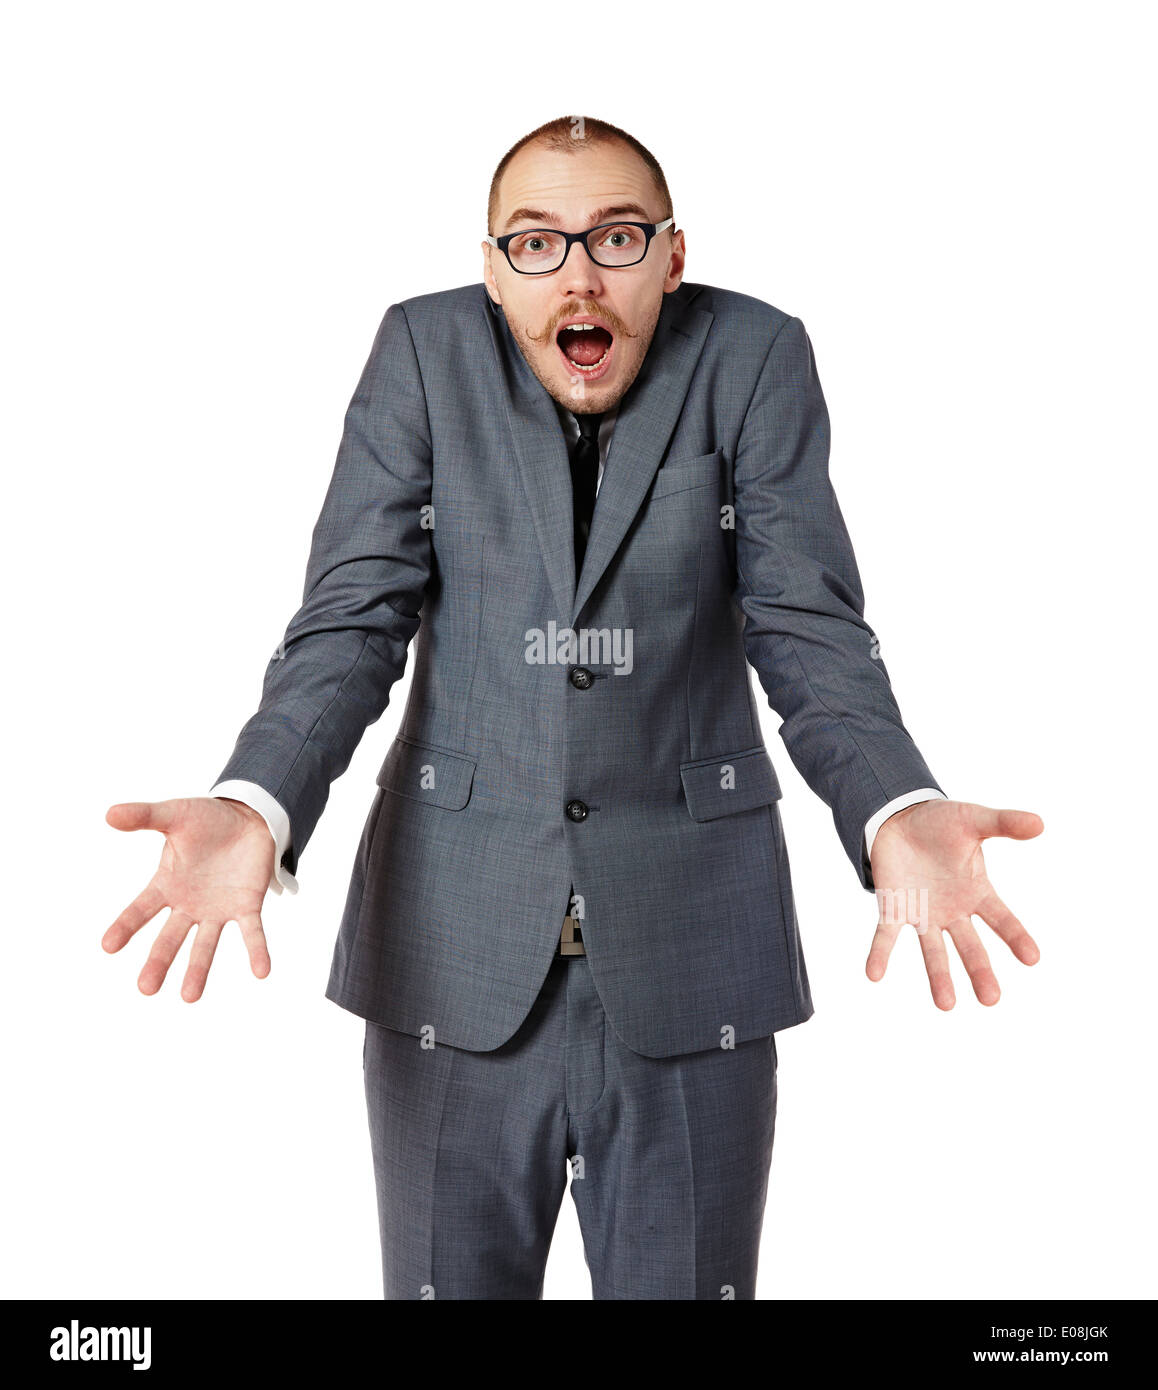 Young man shrugging his shoulders. Man gesturing with hands. Isolated on white. - Stock Image